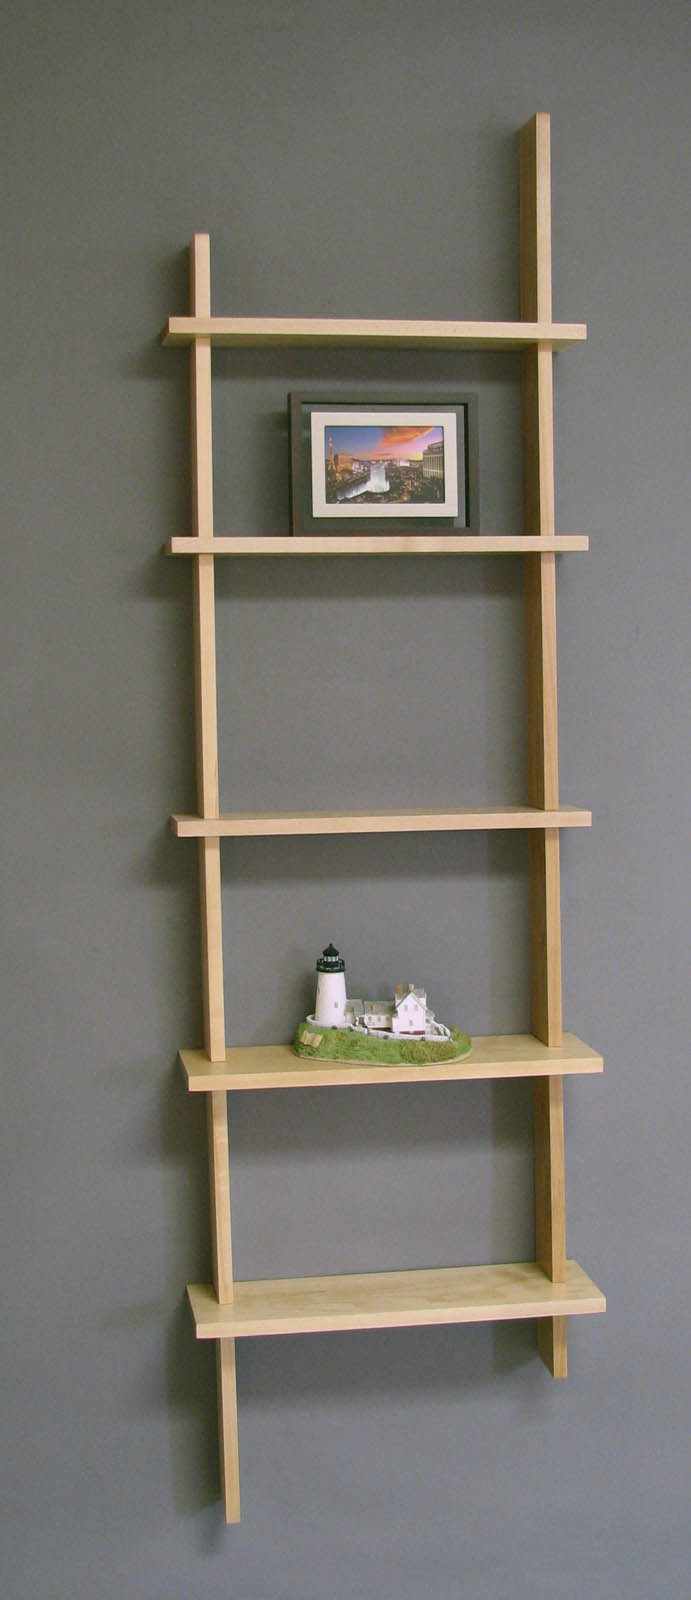 Best ideas about Vertical Wall Shelf . Save or Pin Deluxe Vertical Five Shelf Wall Unit by Woodform in Wall Now.